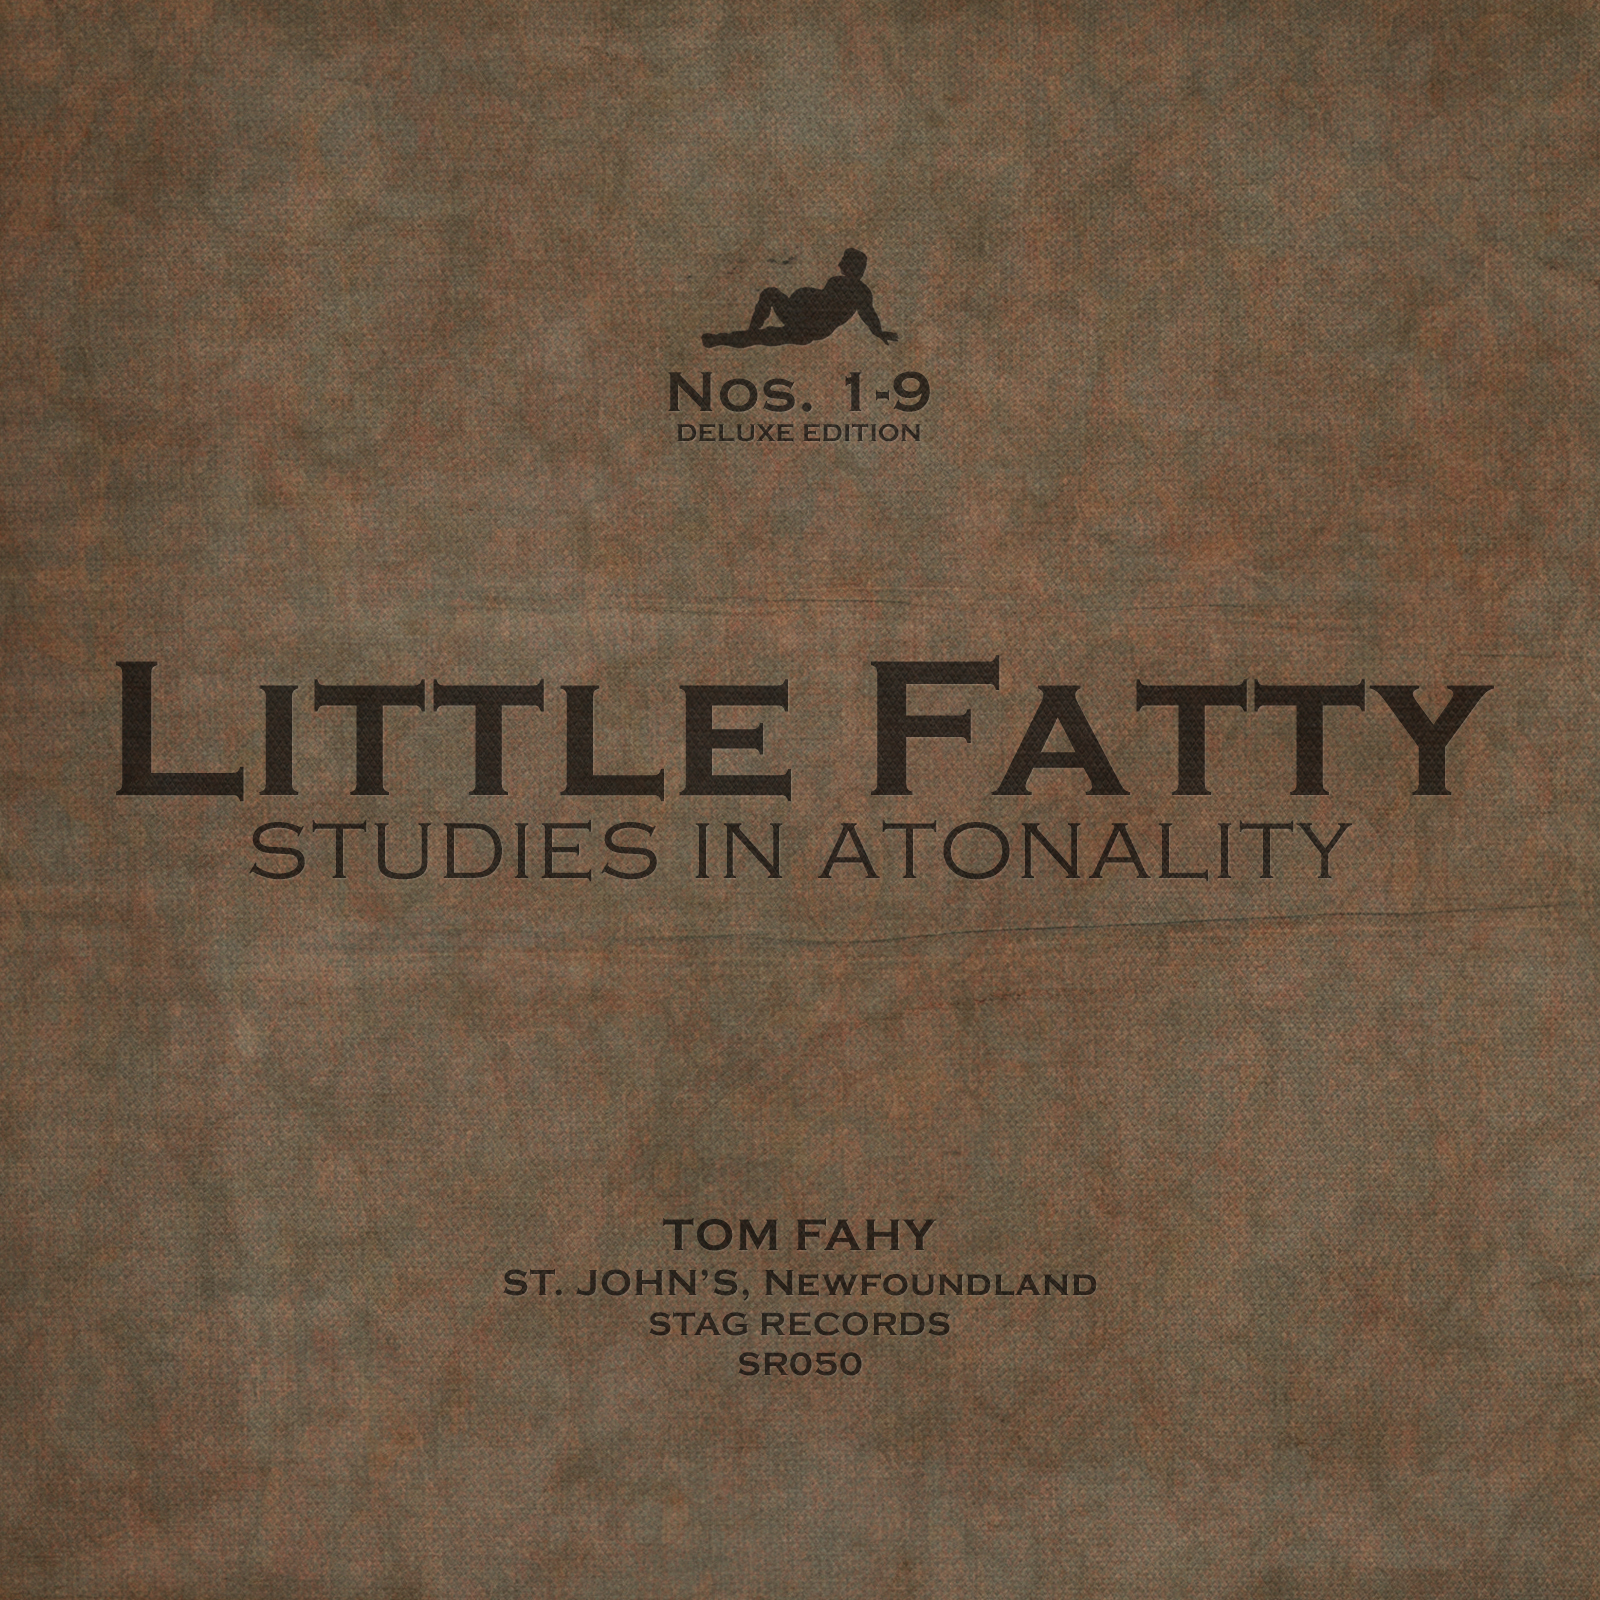 Little Fatty: Studies in Atonality, by Tom Fahy